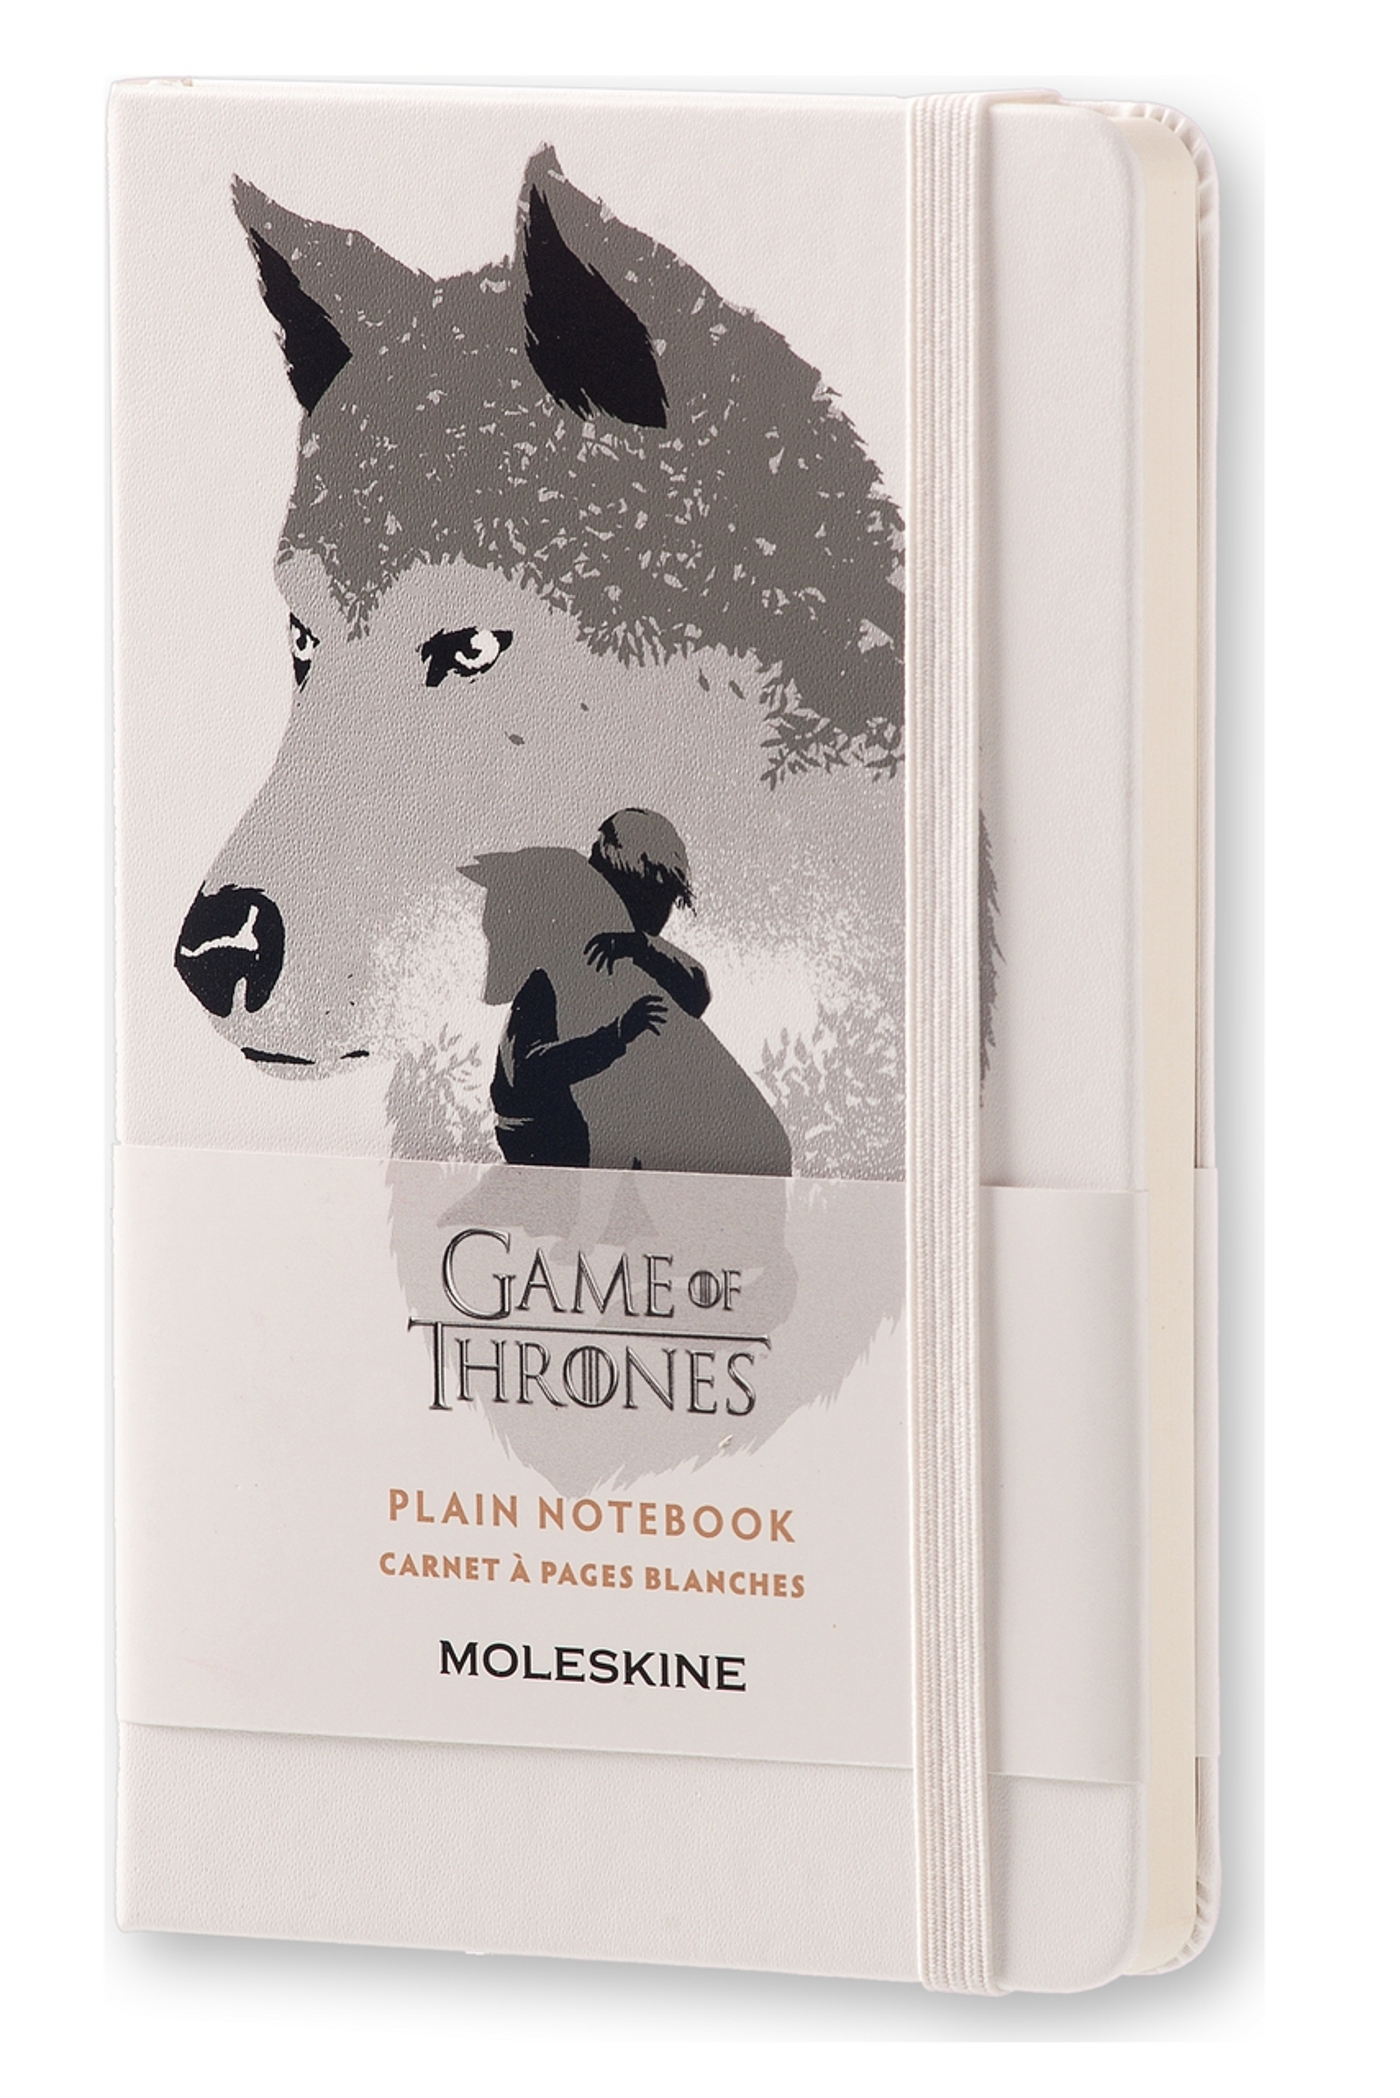 CARNET EDT LIMITEE GAME OF THRONES - FORMAT DE POCHE - PAGES BLANCHES